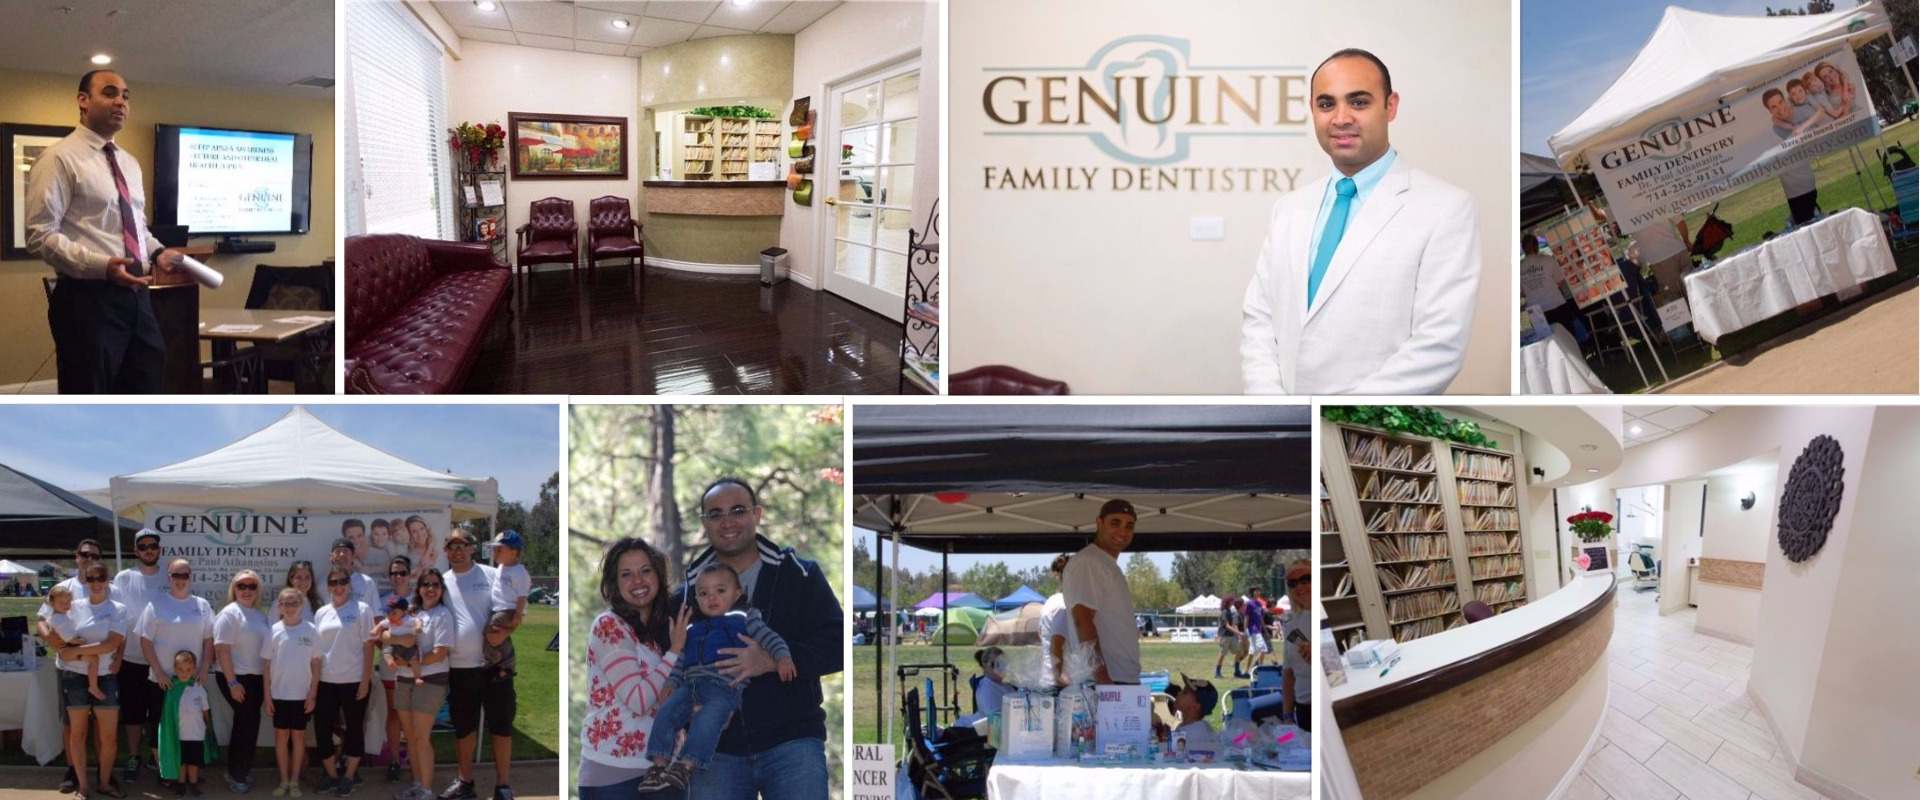 Dr. Paul - Local Orange County Dentist